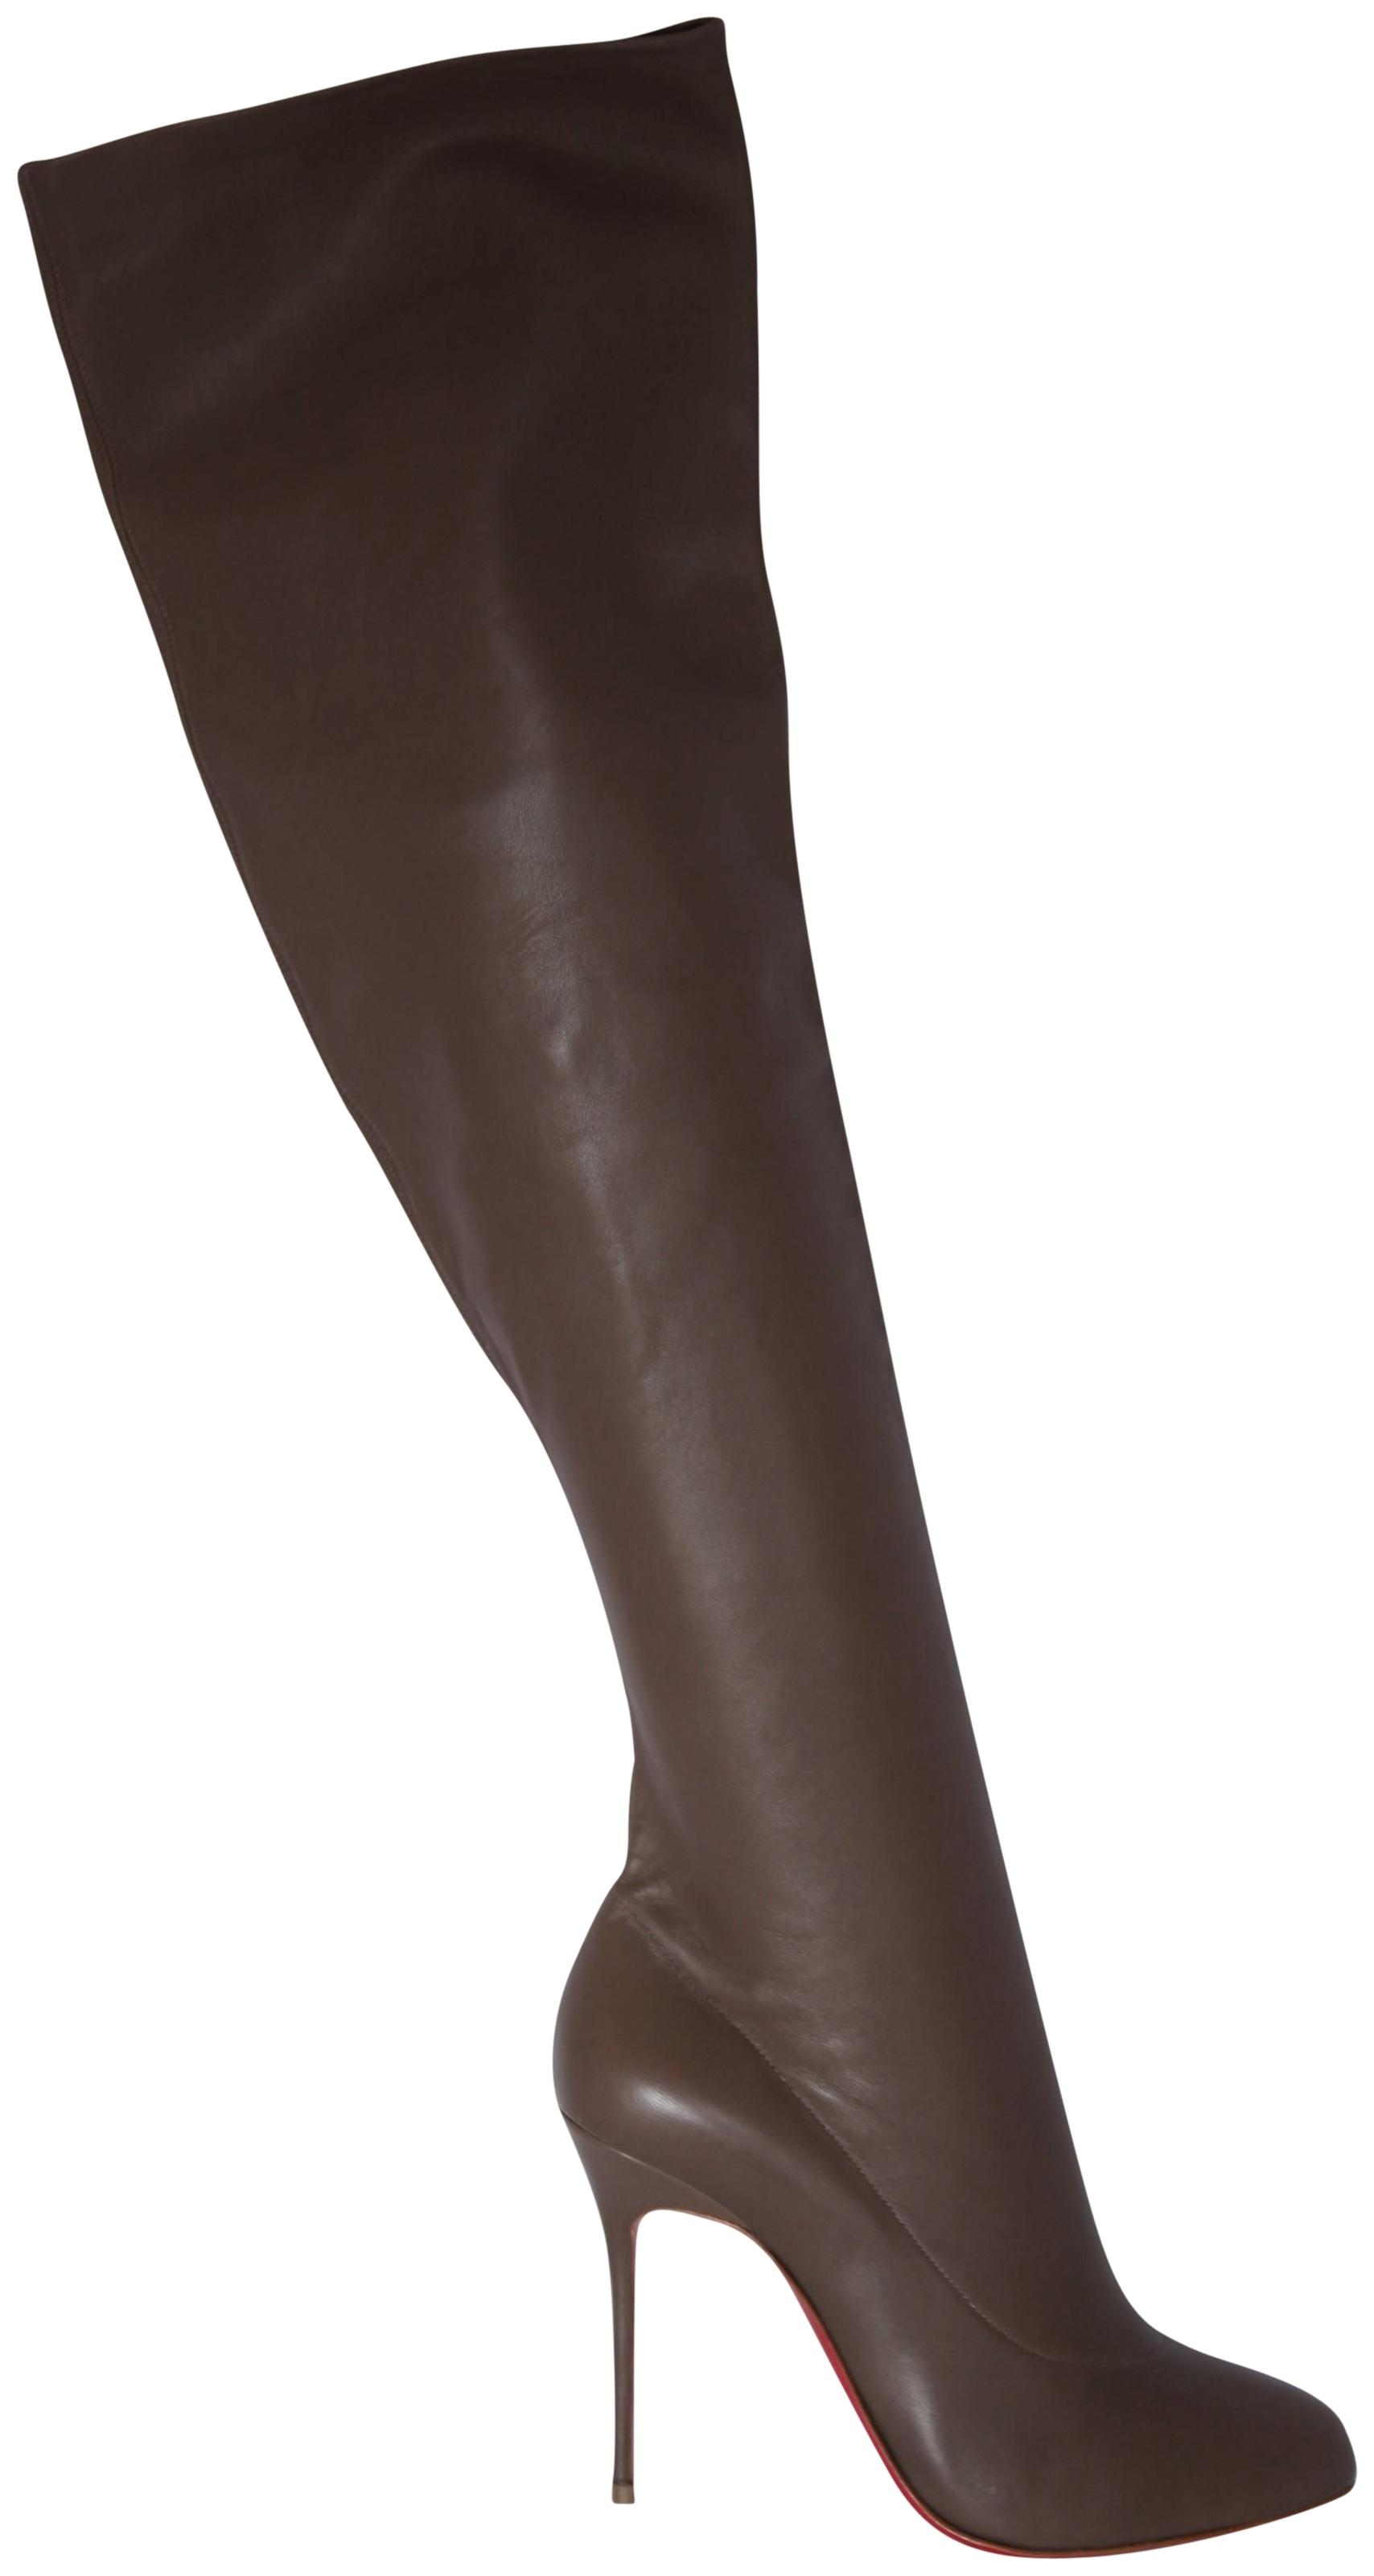 huge selection of 05f2f 21f44 france christian louboutin monica thigh high boots reviews ...